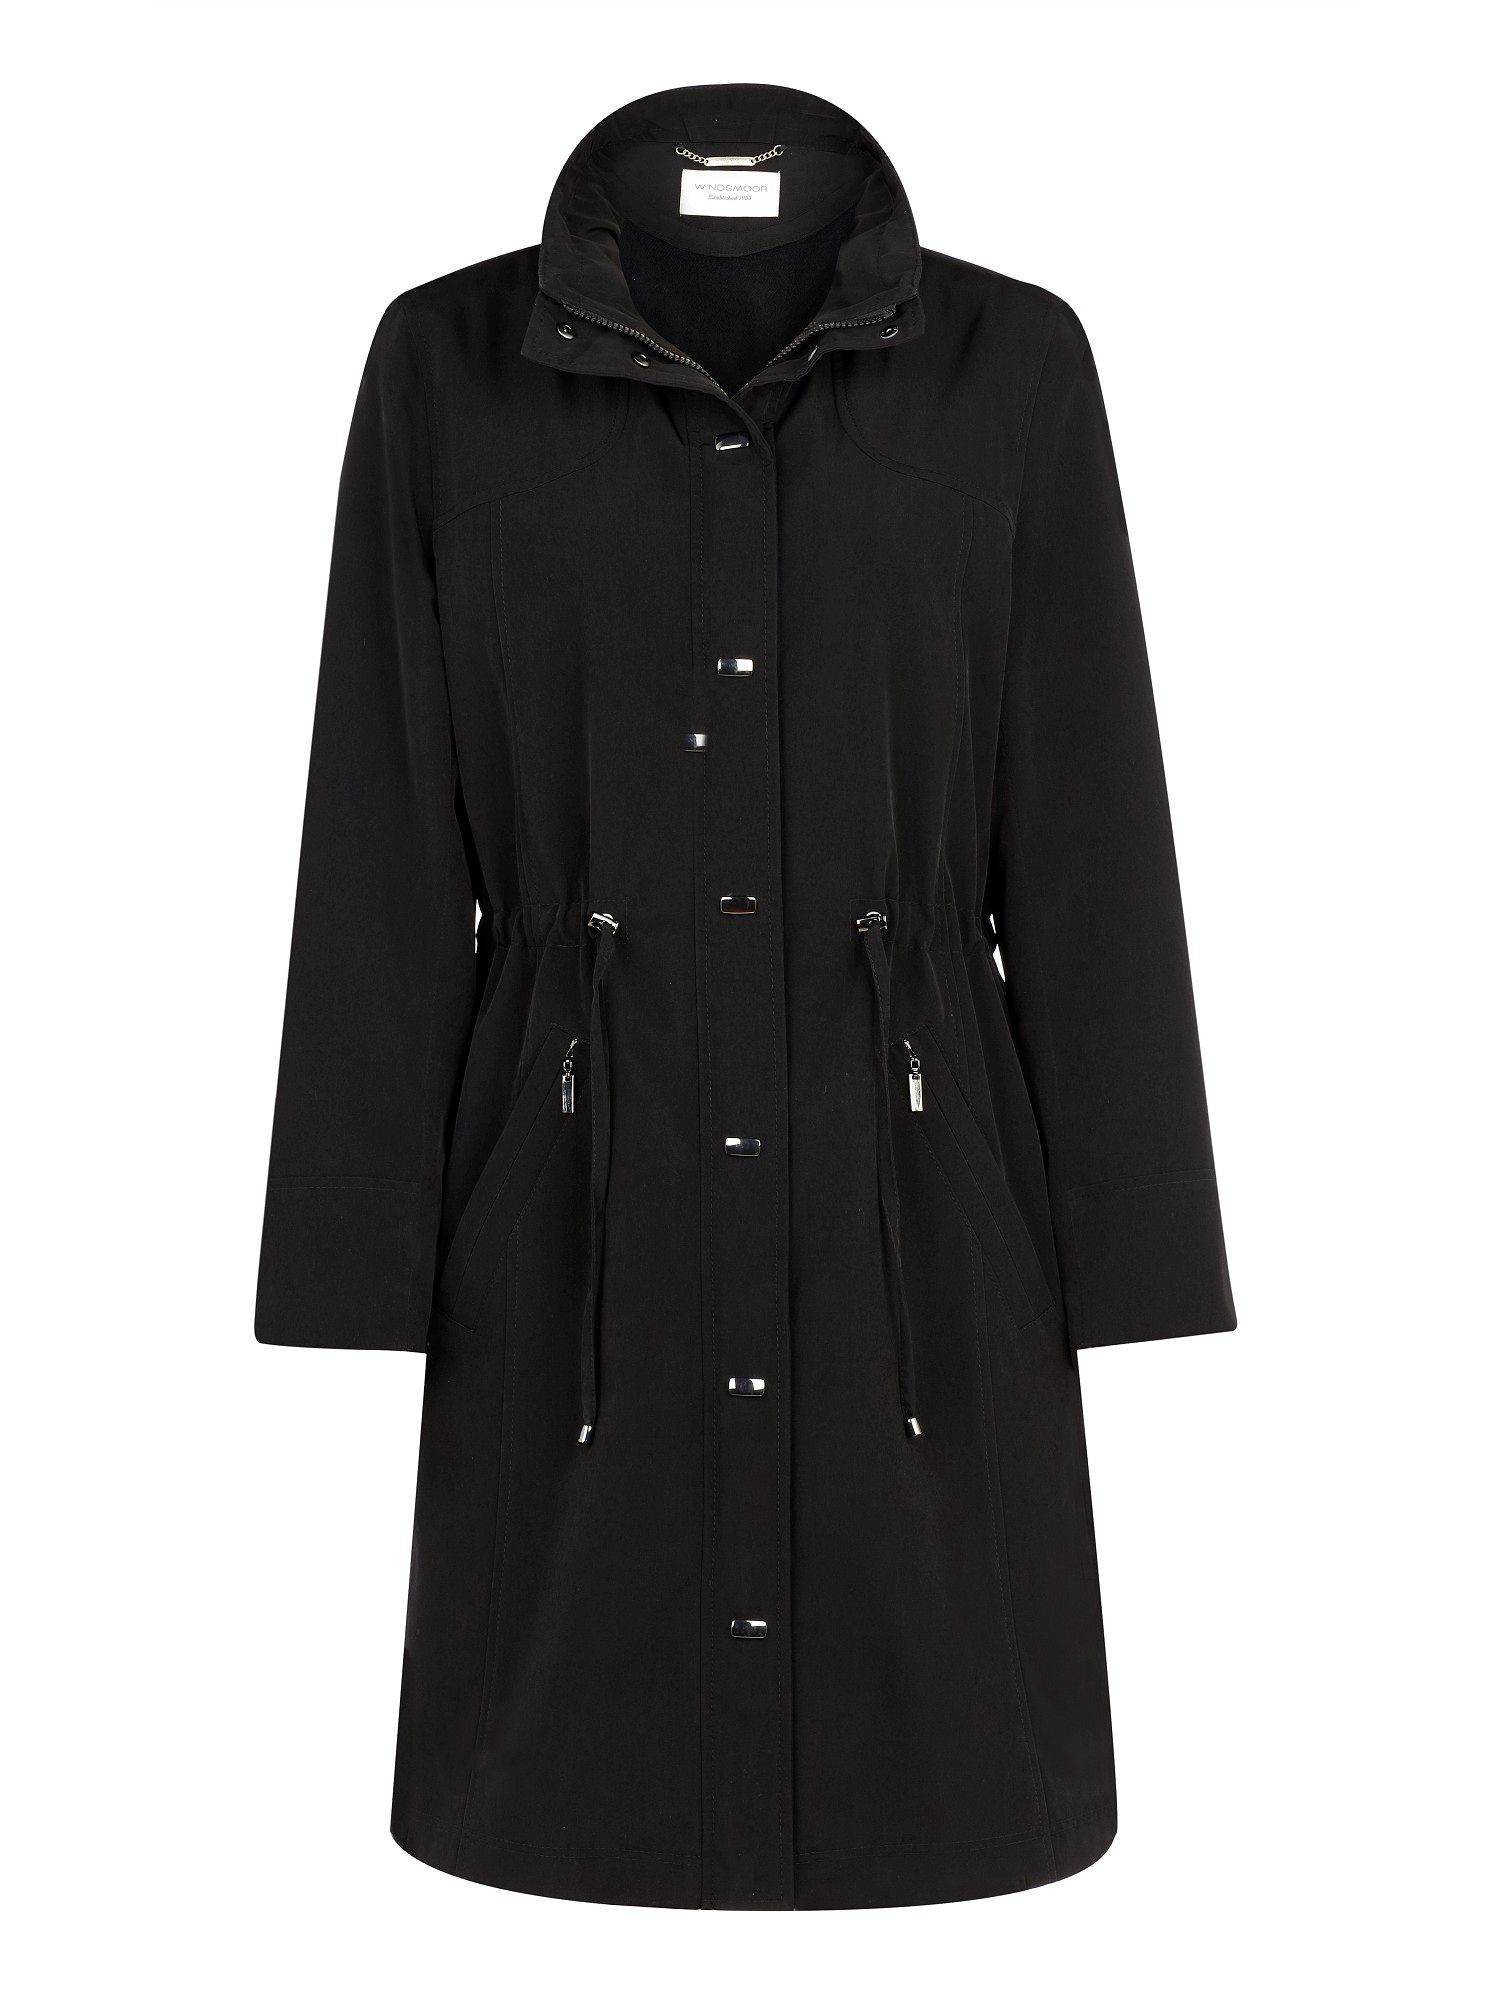 Mid length black raincoat